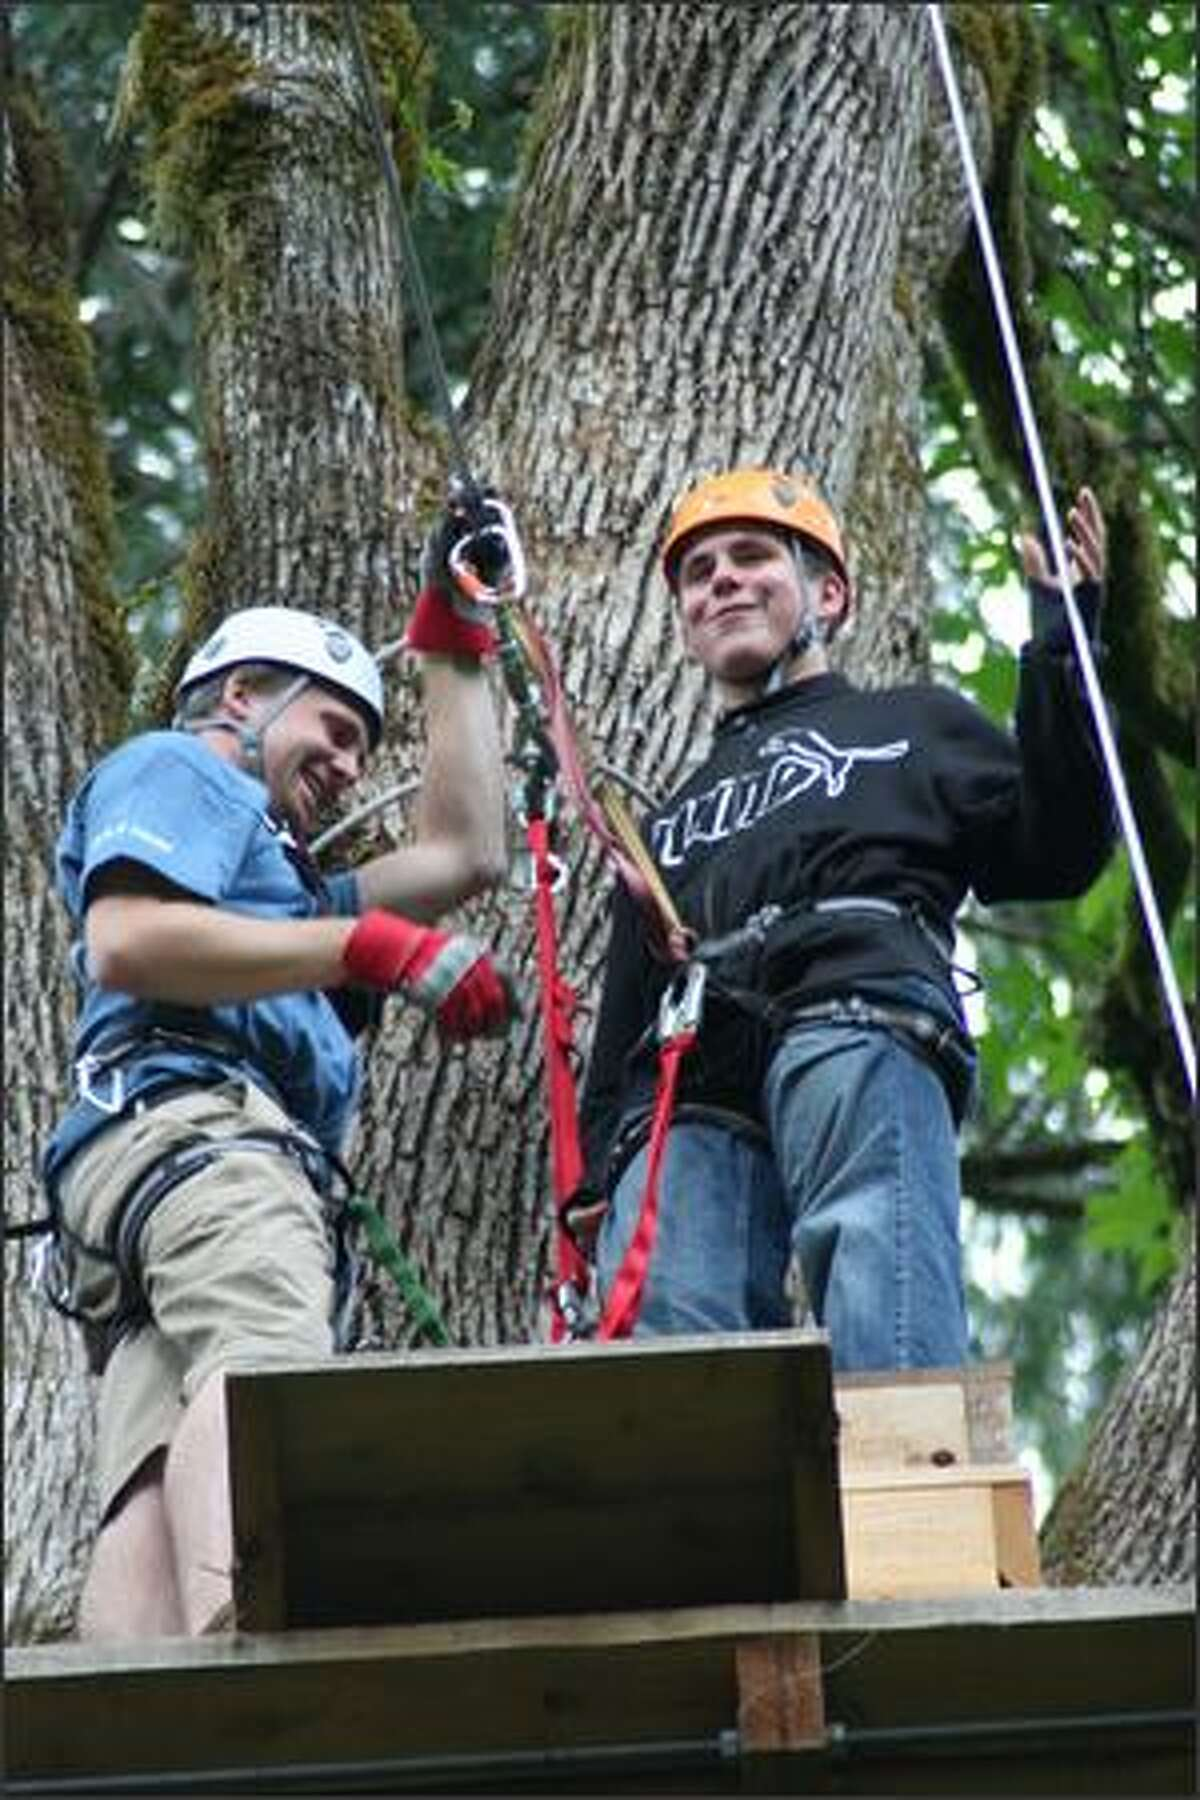 High in a treetop perch at zipline No. 4, Fraser McGee gets his harness attached by guide Cole Carnes.